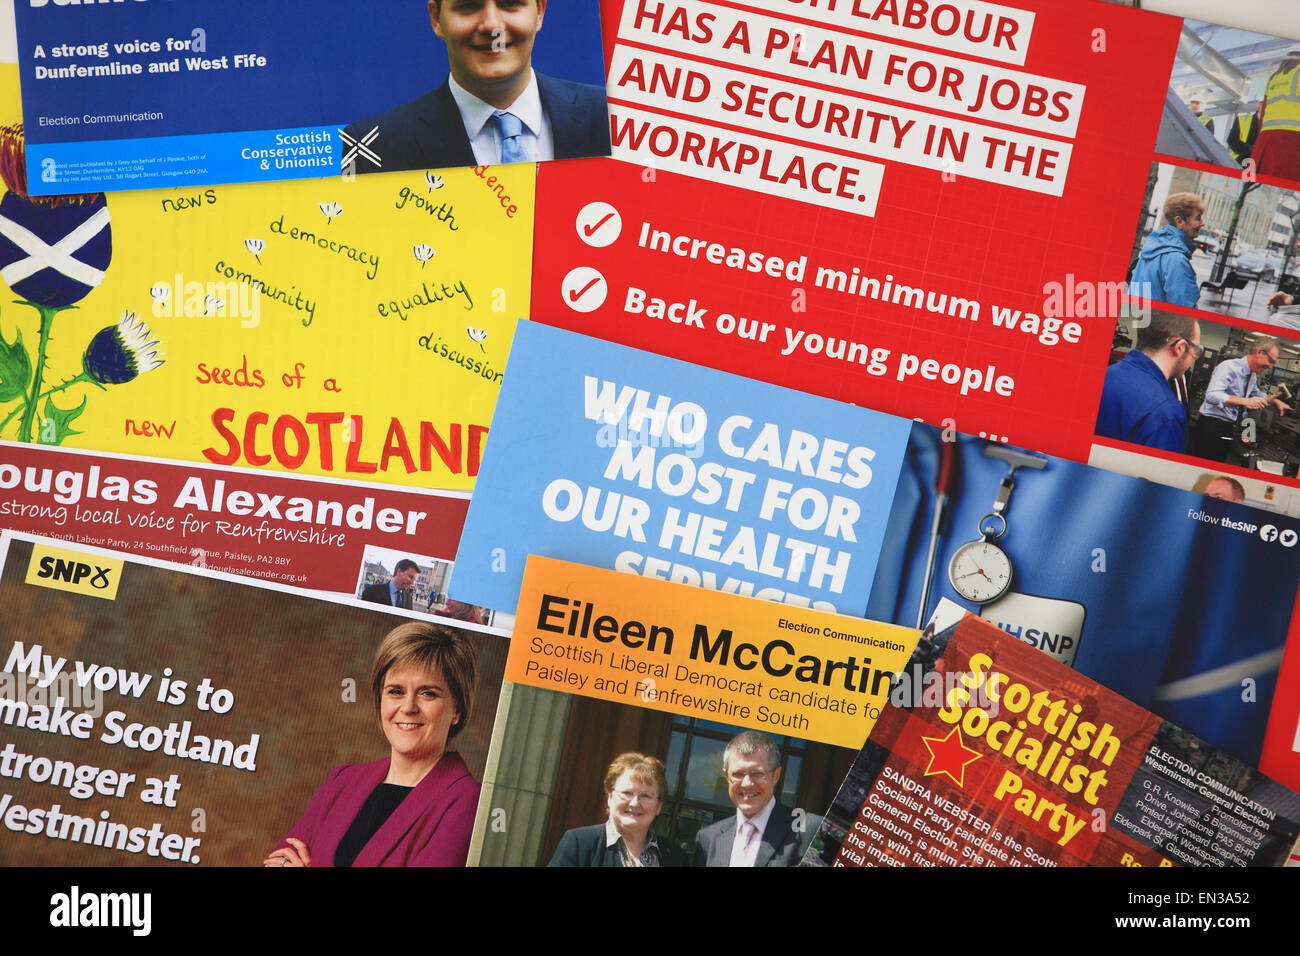 General election, 7 May 2015, campaign flyers from various political parties - Stock Image